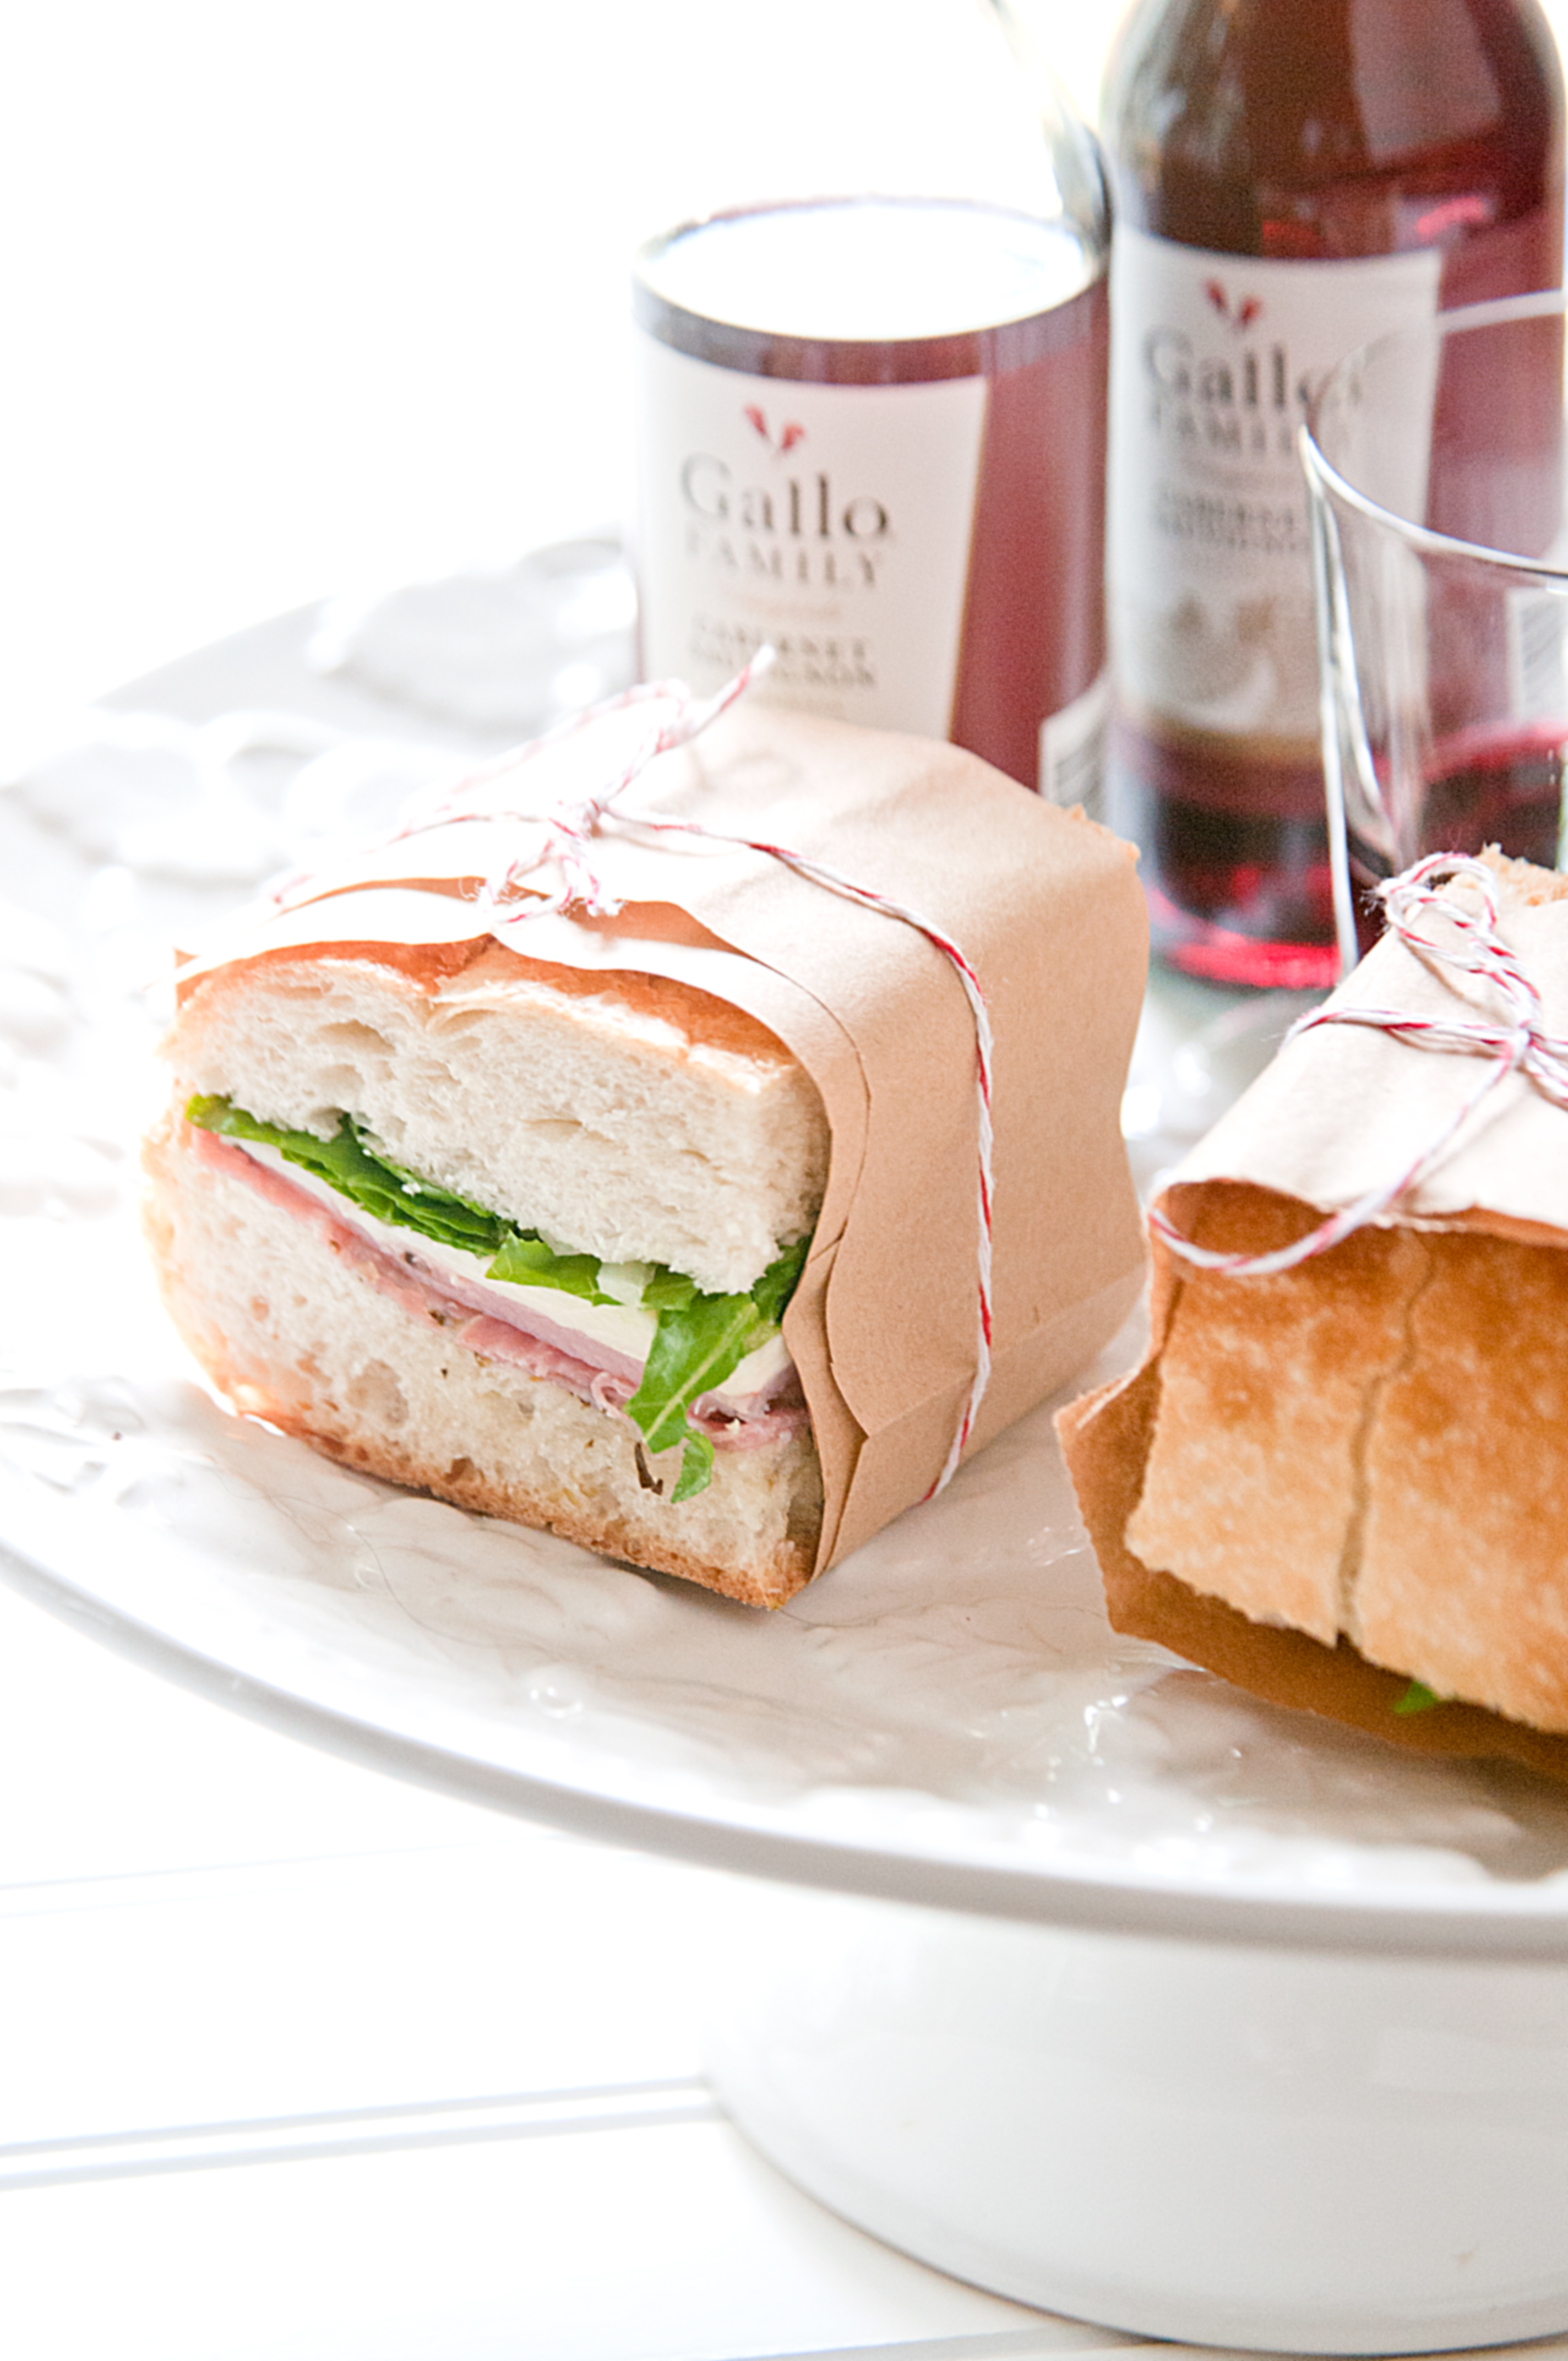 Italian Hoagie Style Pressed Picnic Sandwiches